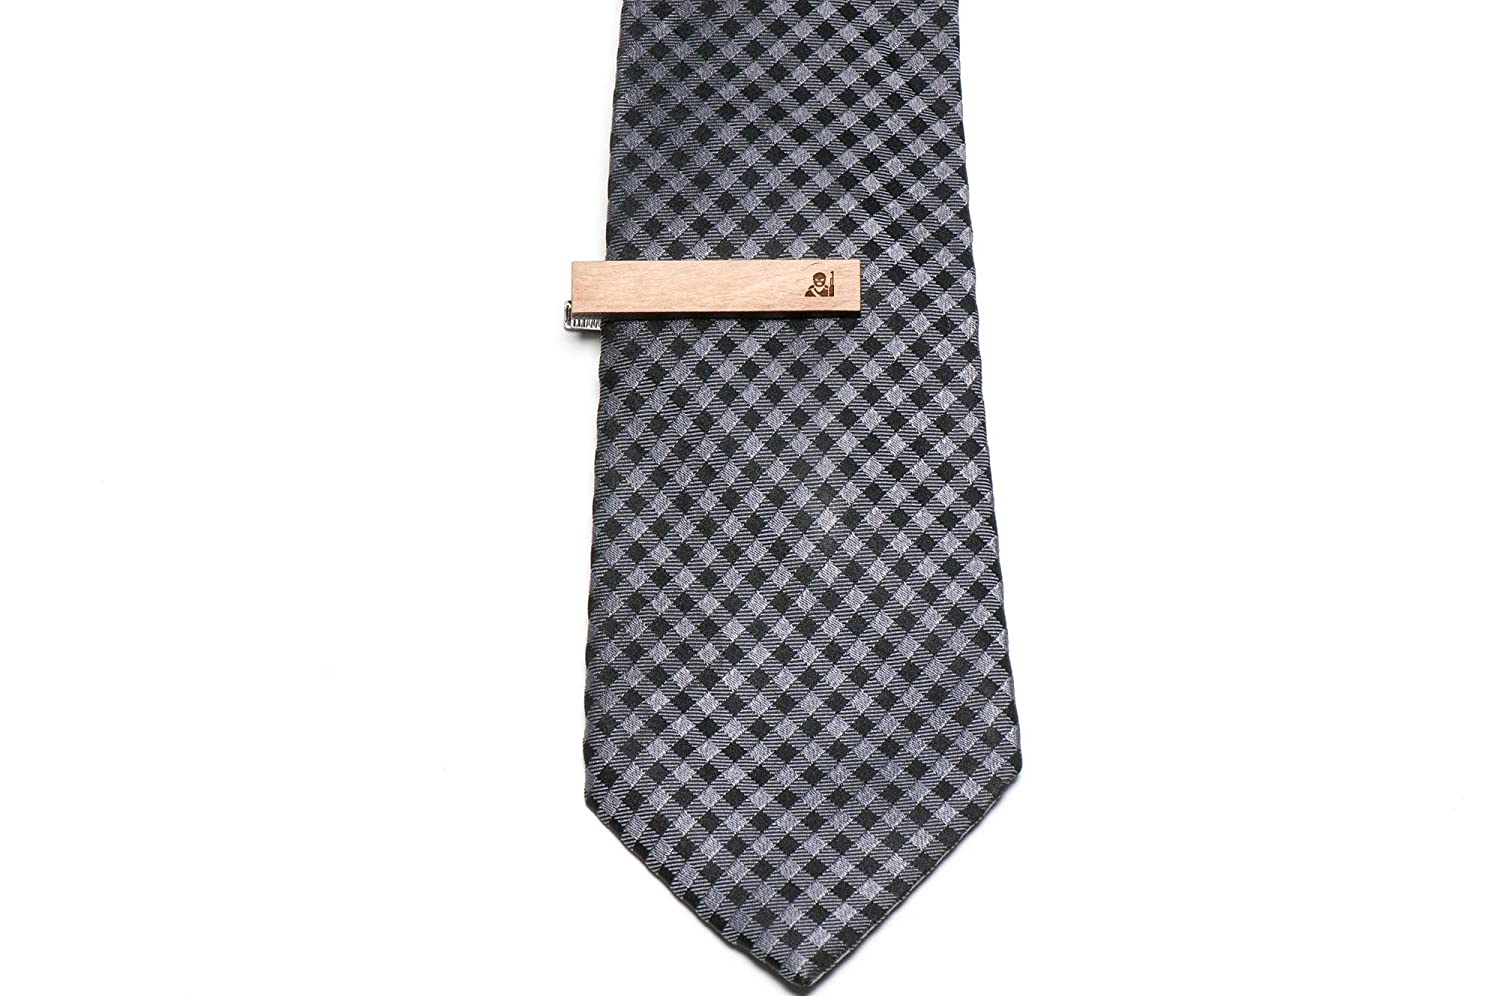 Wooden Accessories Company Wooden Tie Clips with Laser Engraved Terrorist Design Cherry Wood Tie Bar Engraved in The USA